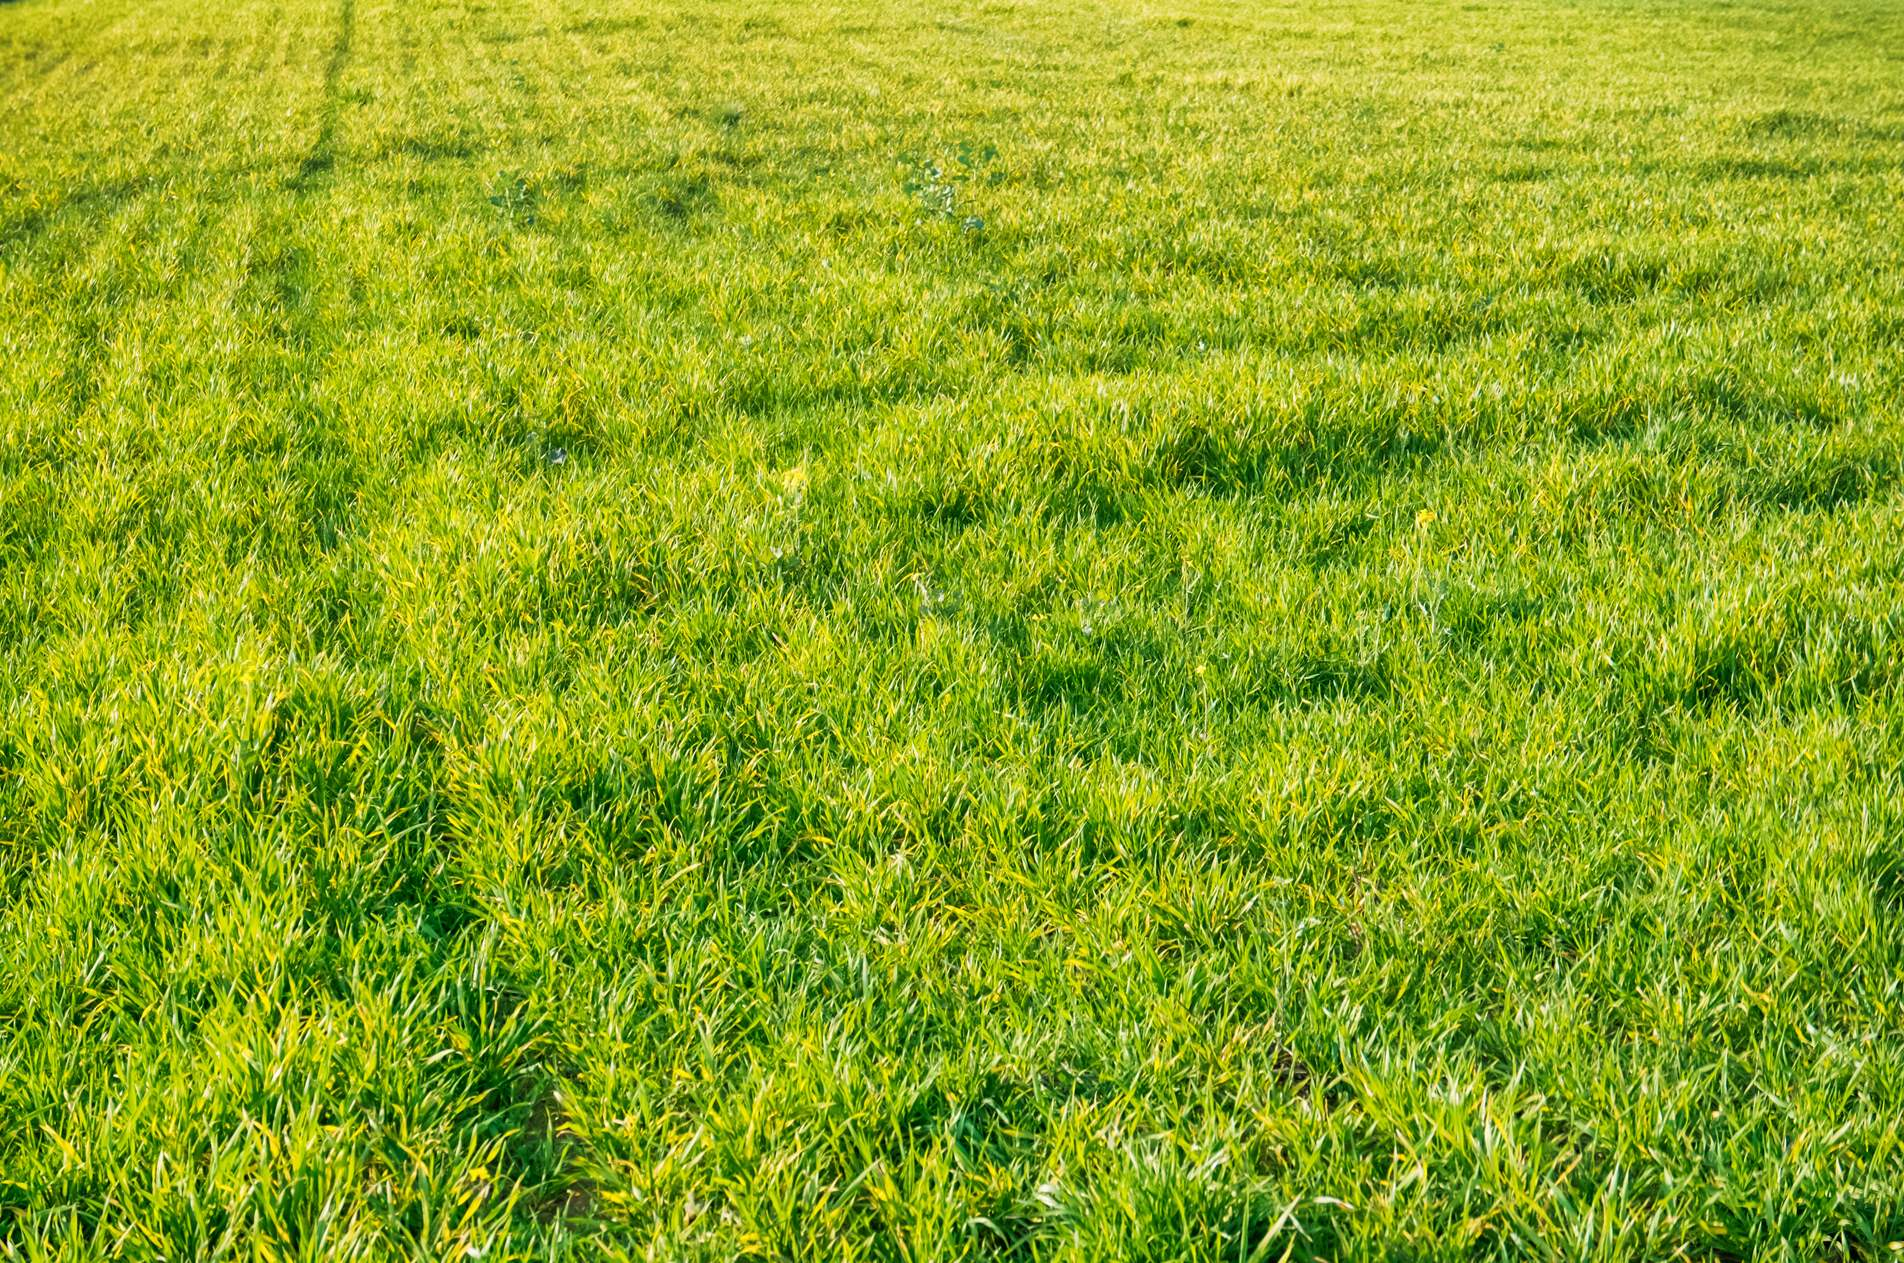 fields and grass - photo #22